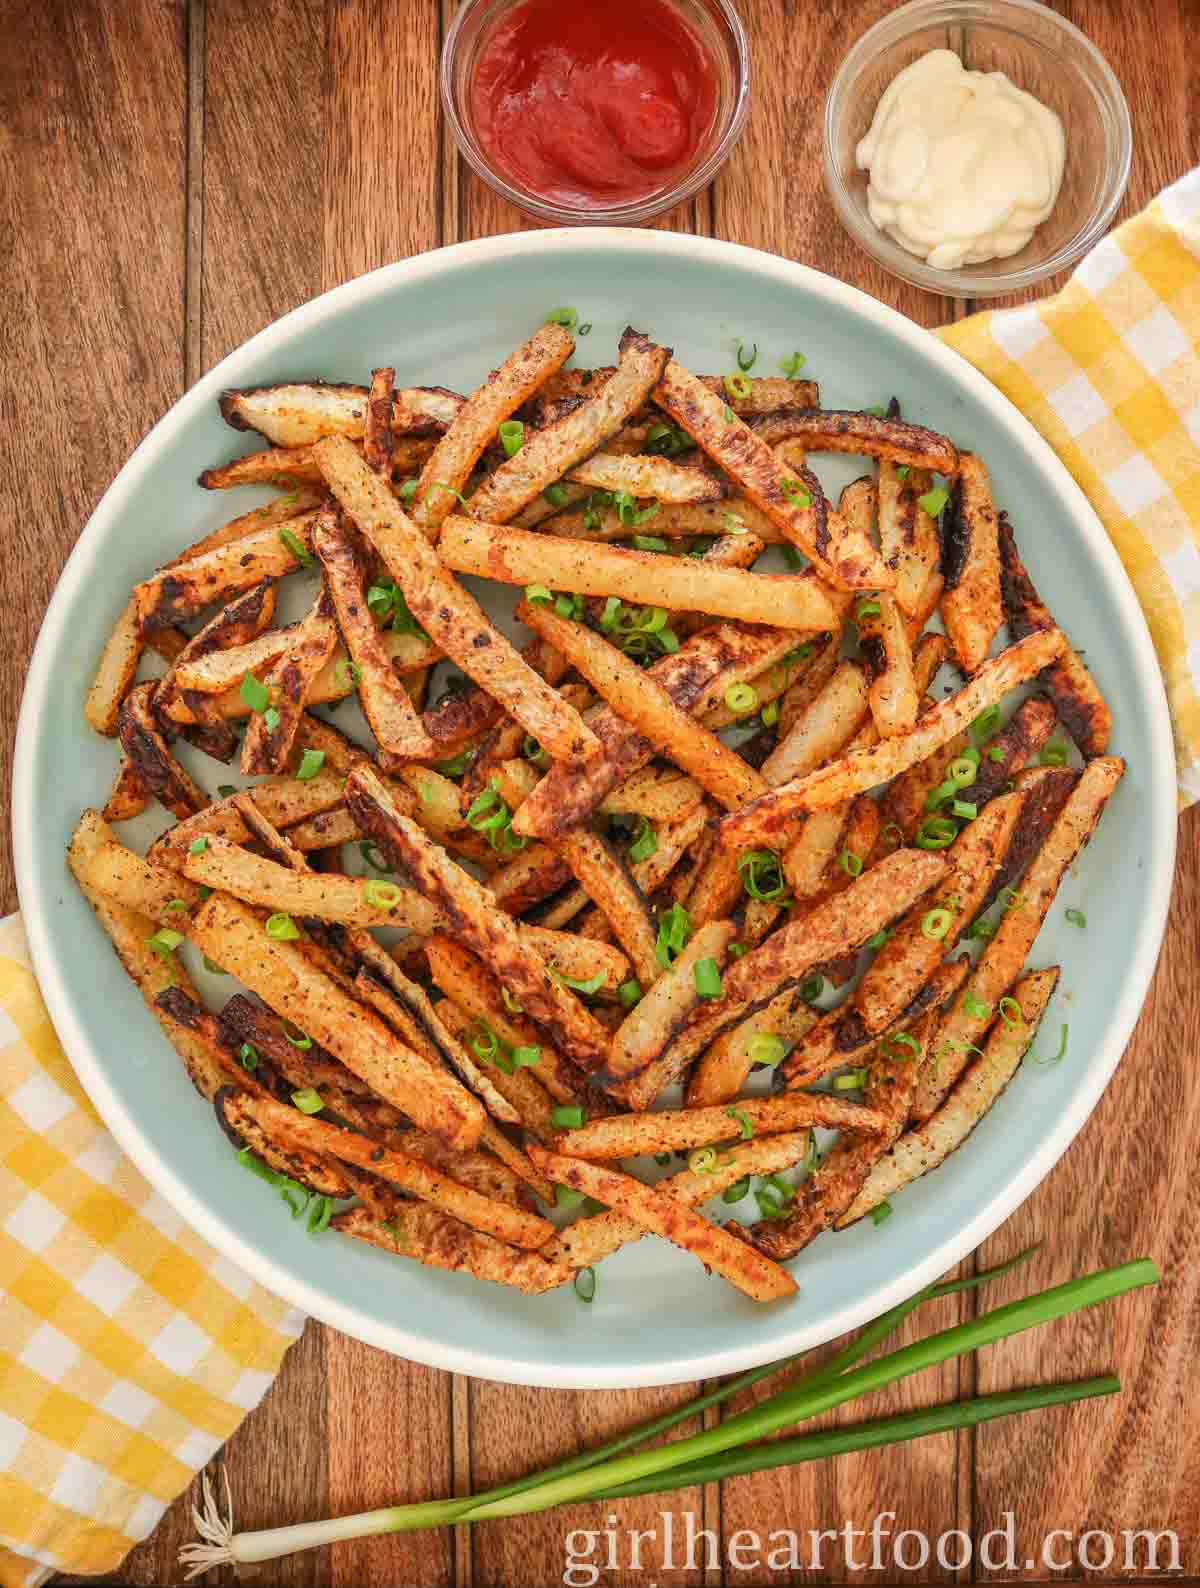 Plate of kohlrabi fries with green onion next to dipping sauces and green onion.